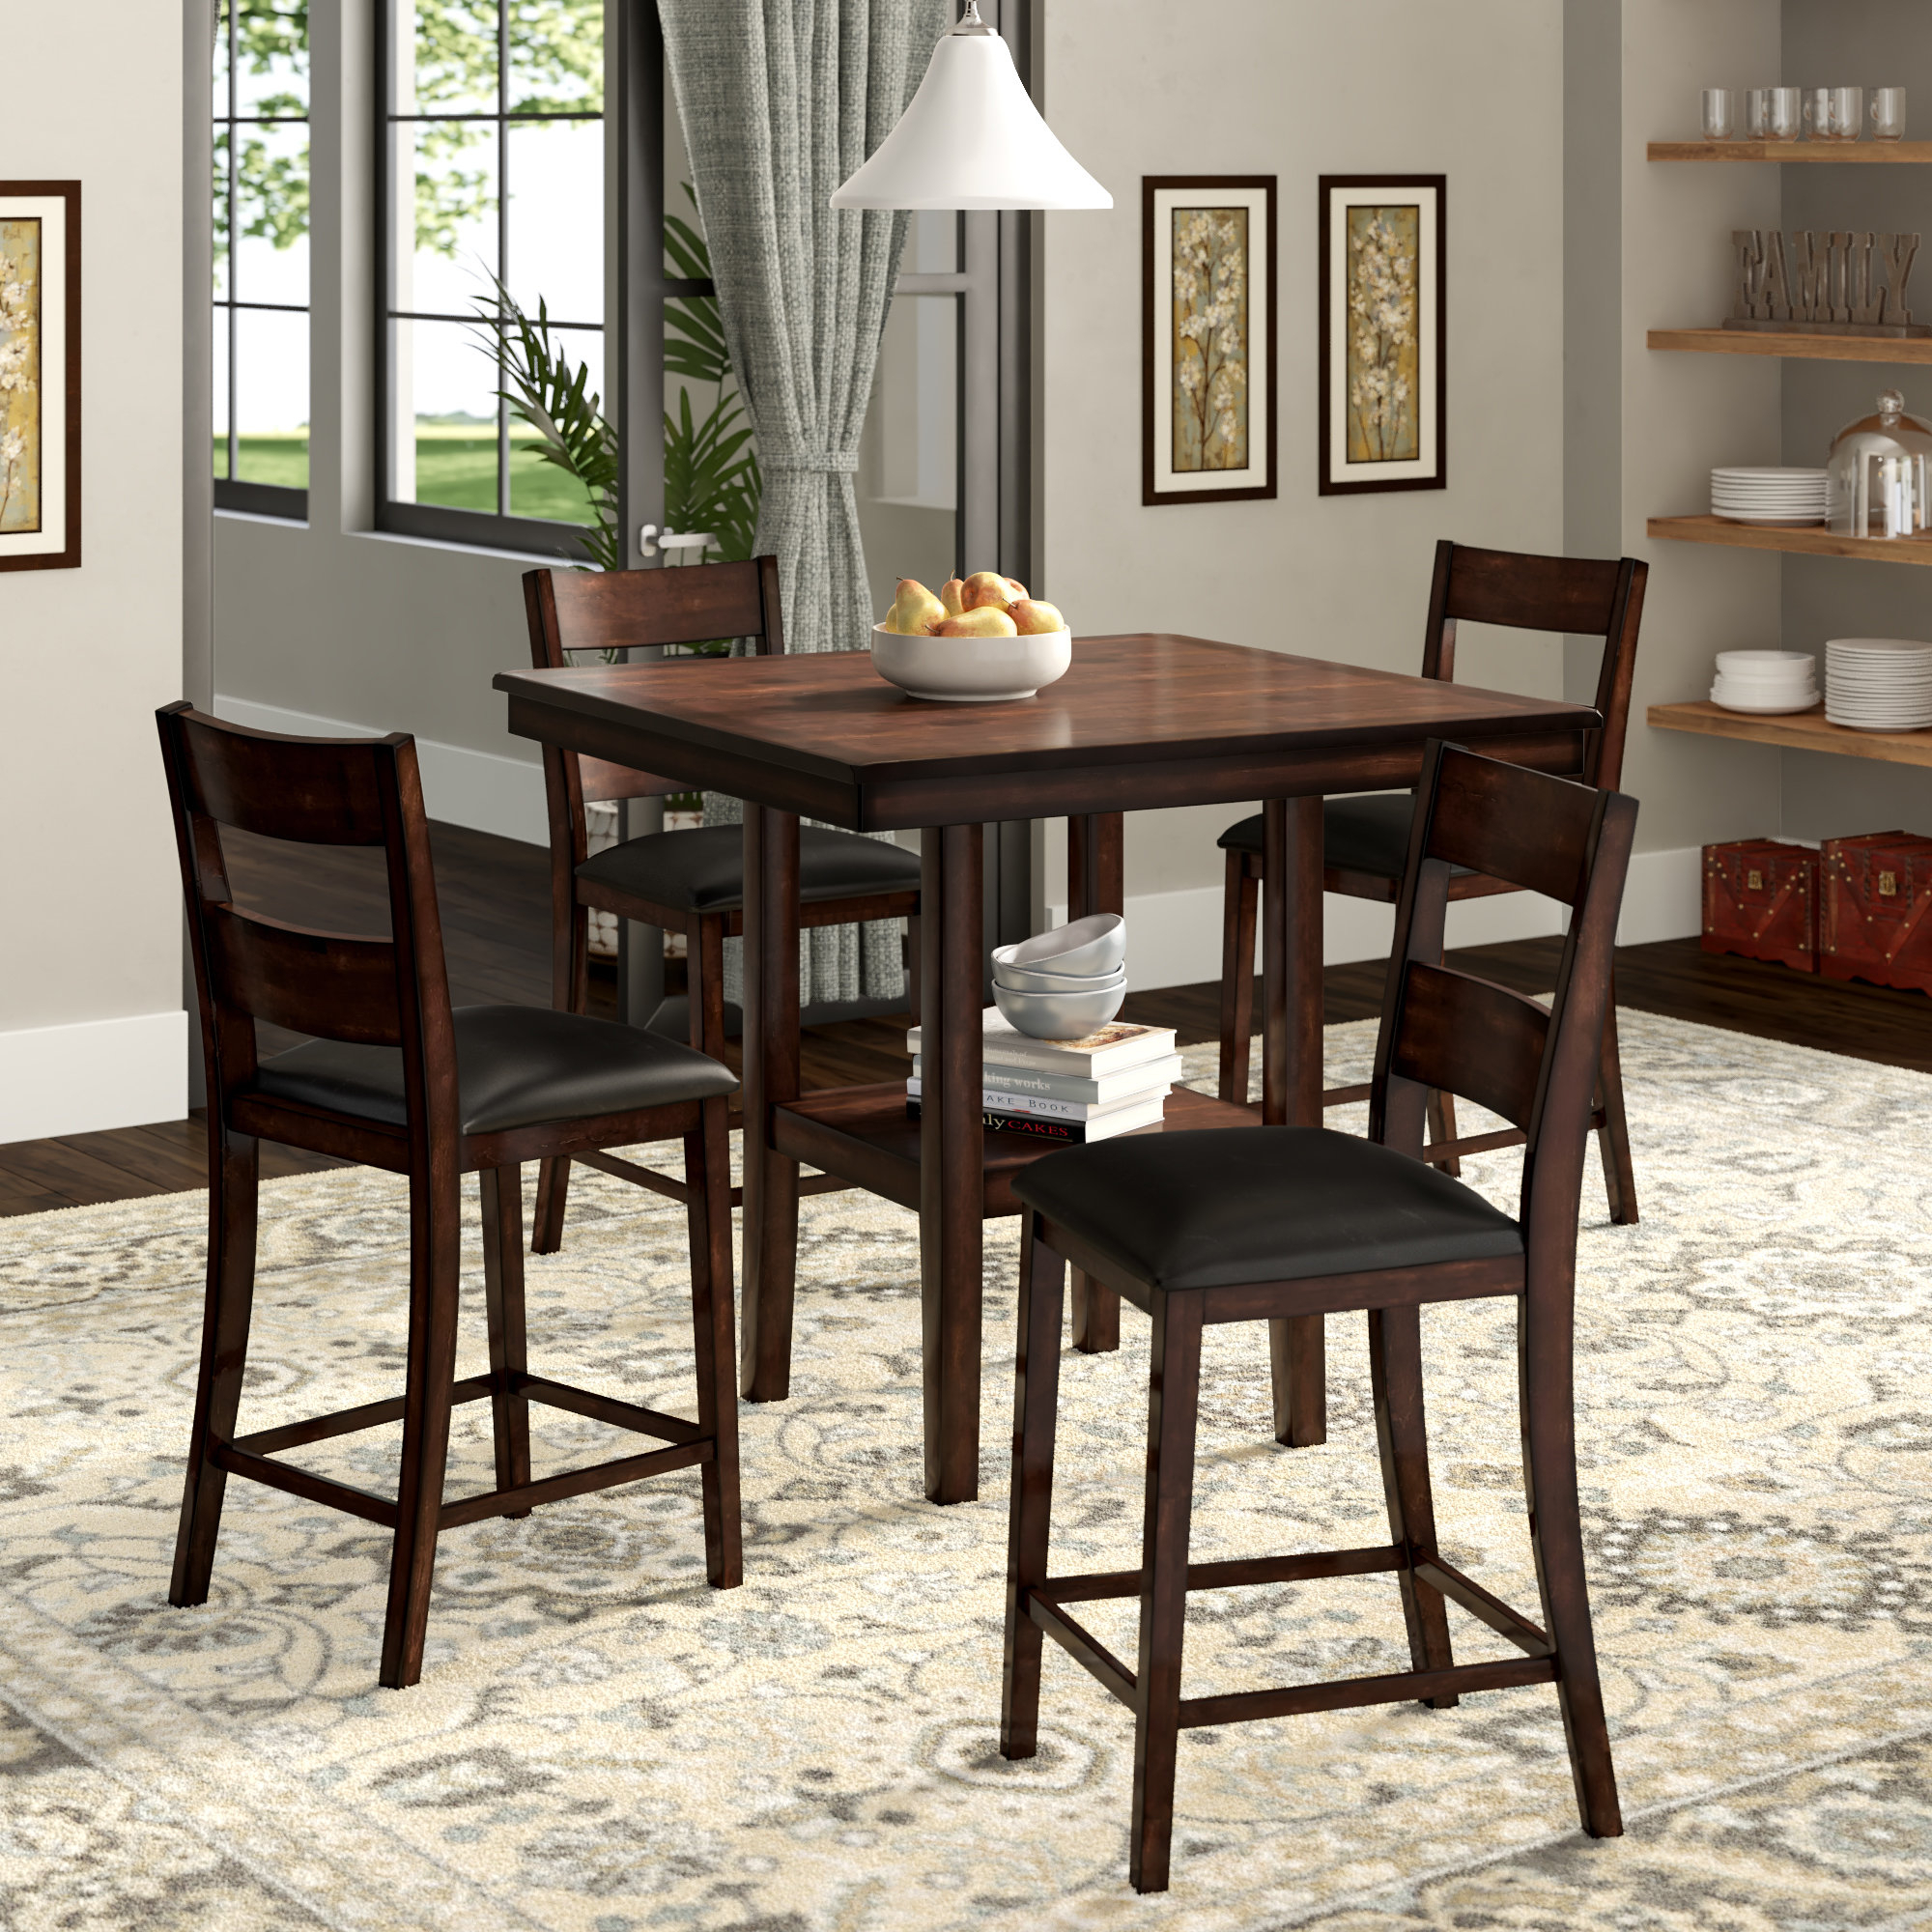 Berrios 3 Piece Counter Height Dining Sets Pertaining To 2019 Winston Porter Juno 5 Piece Counter Height Dining Set & Reviews (View 11 of 20)